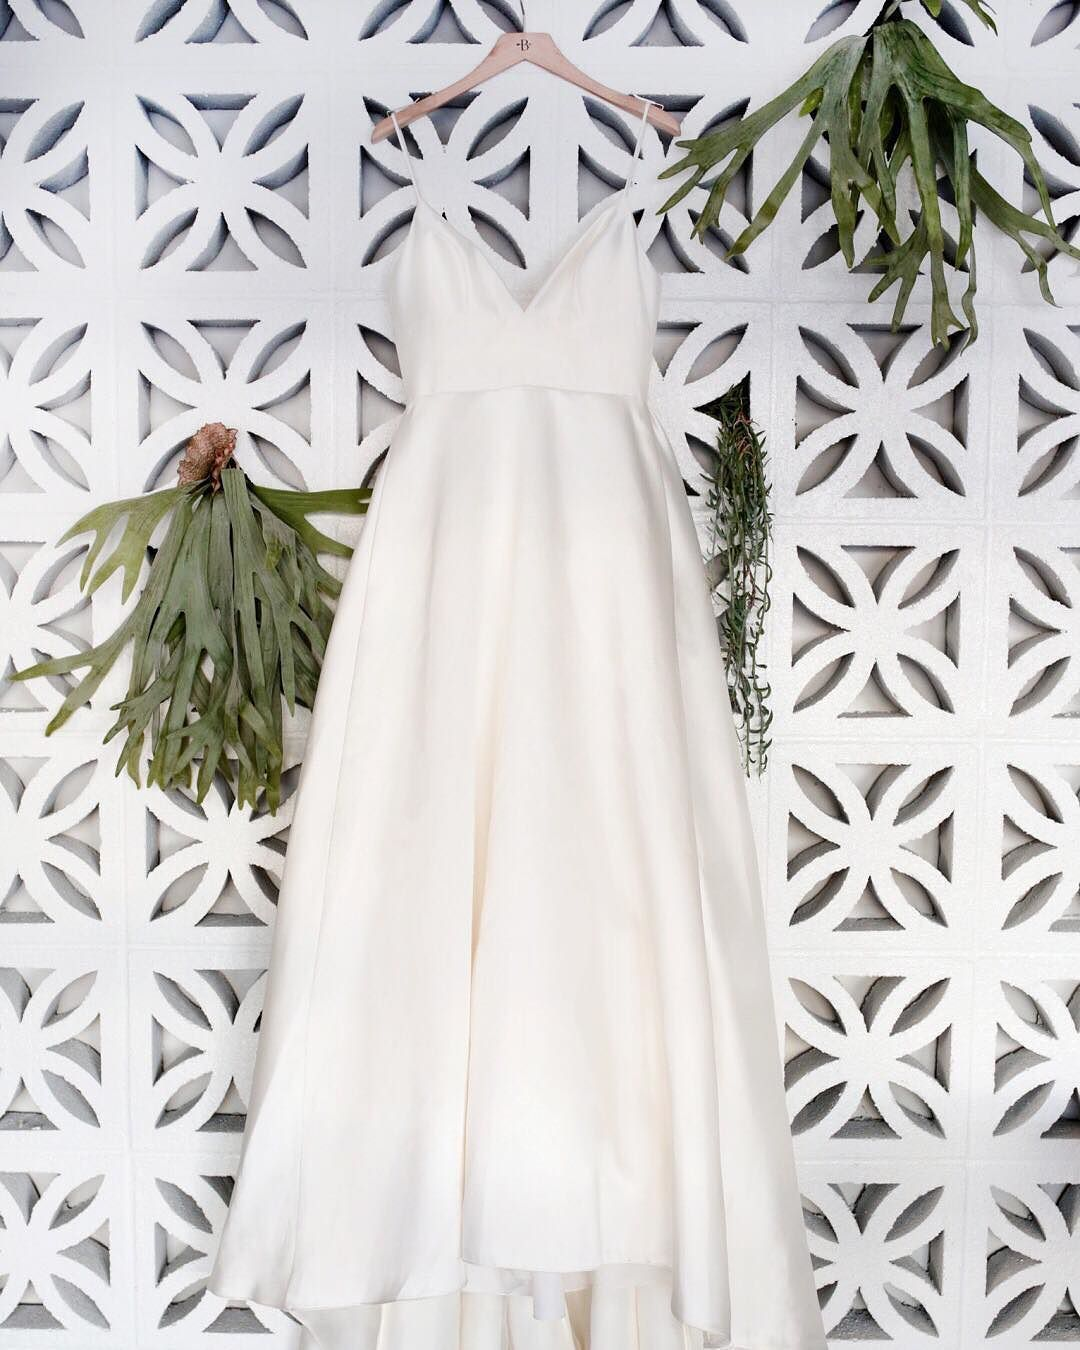 Weddingideas wedding ideas pinterest wedding dress